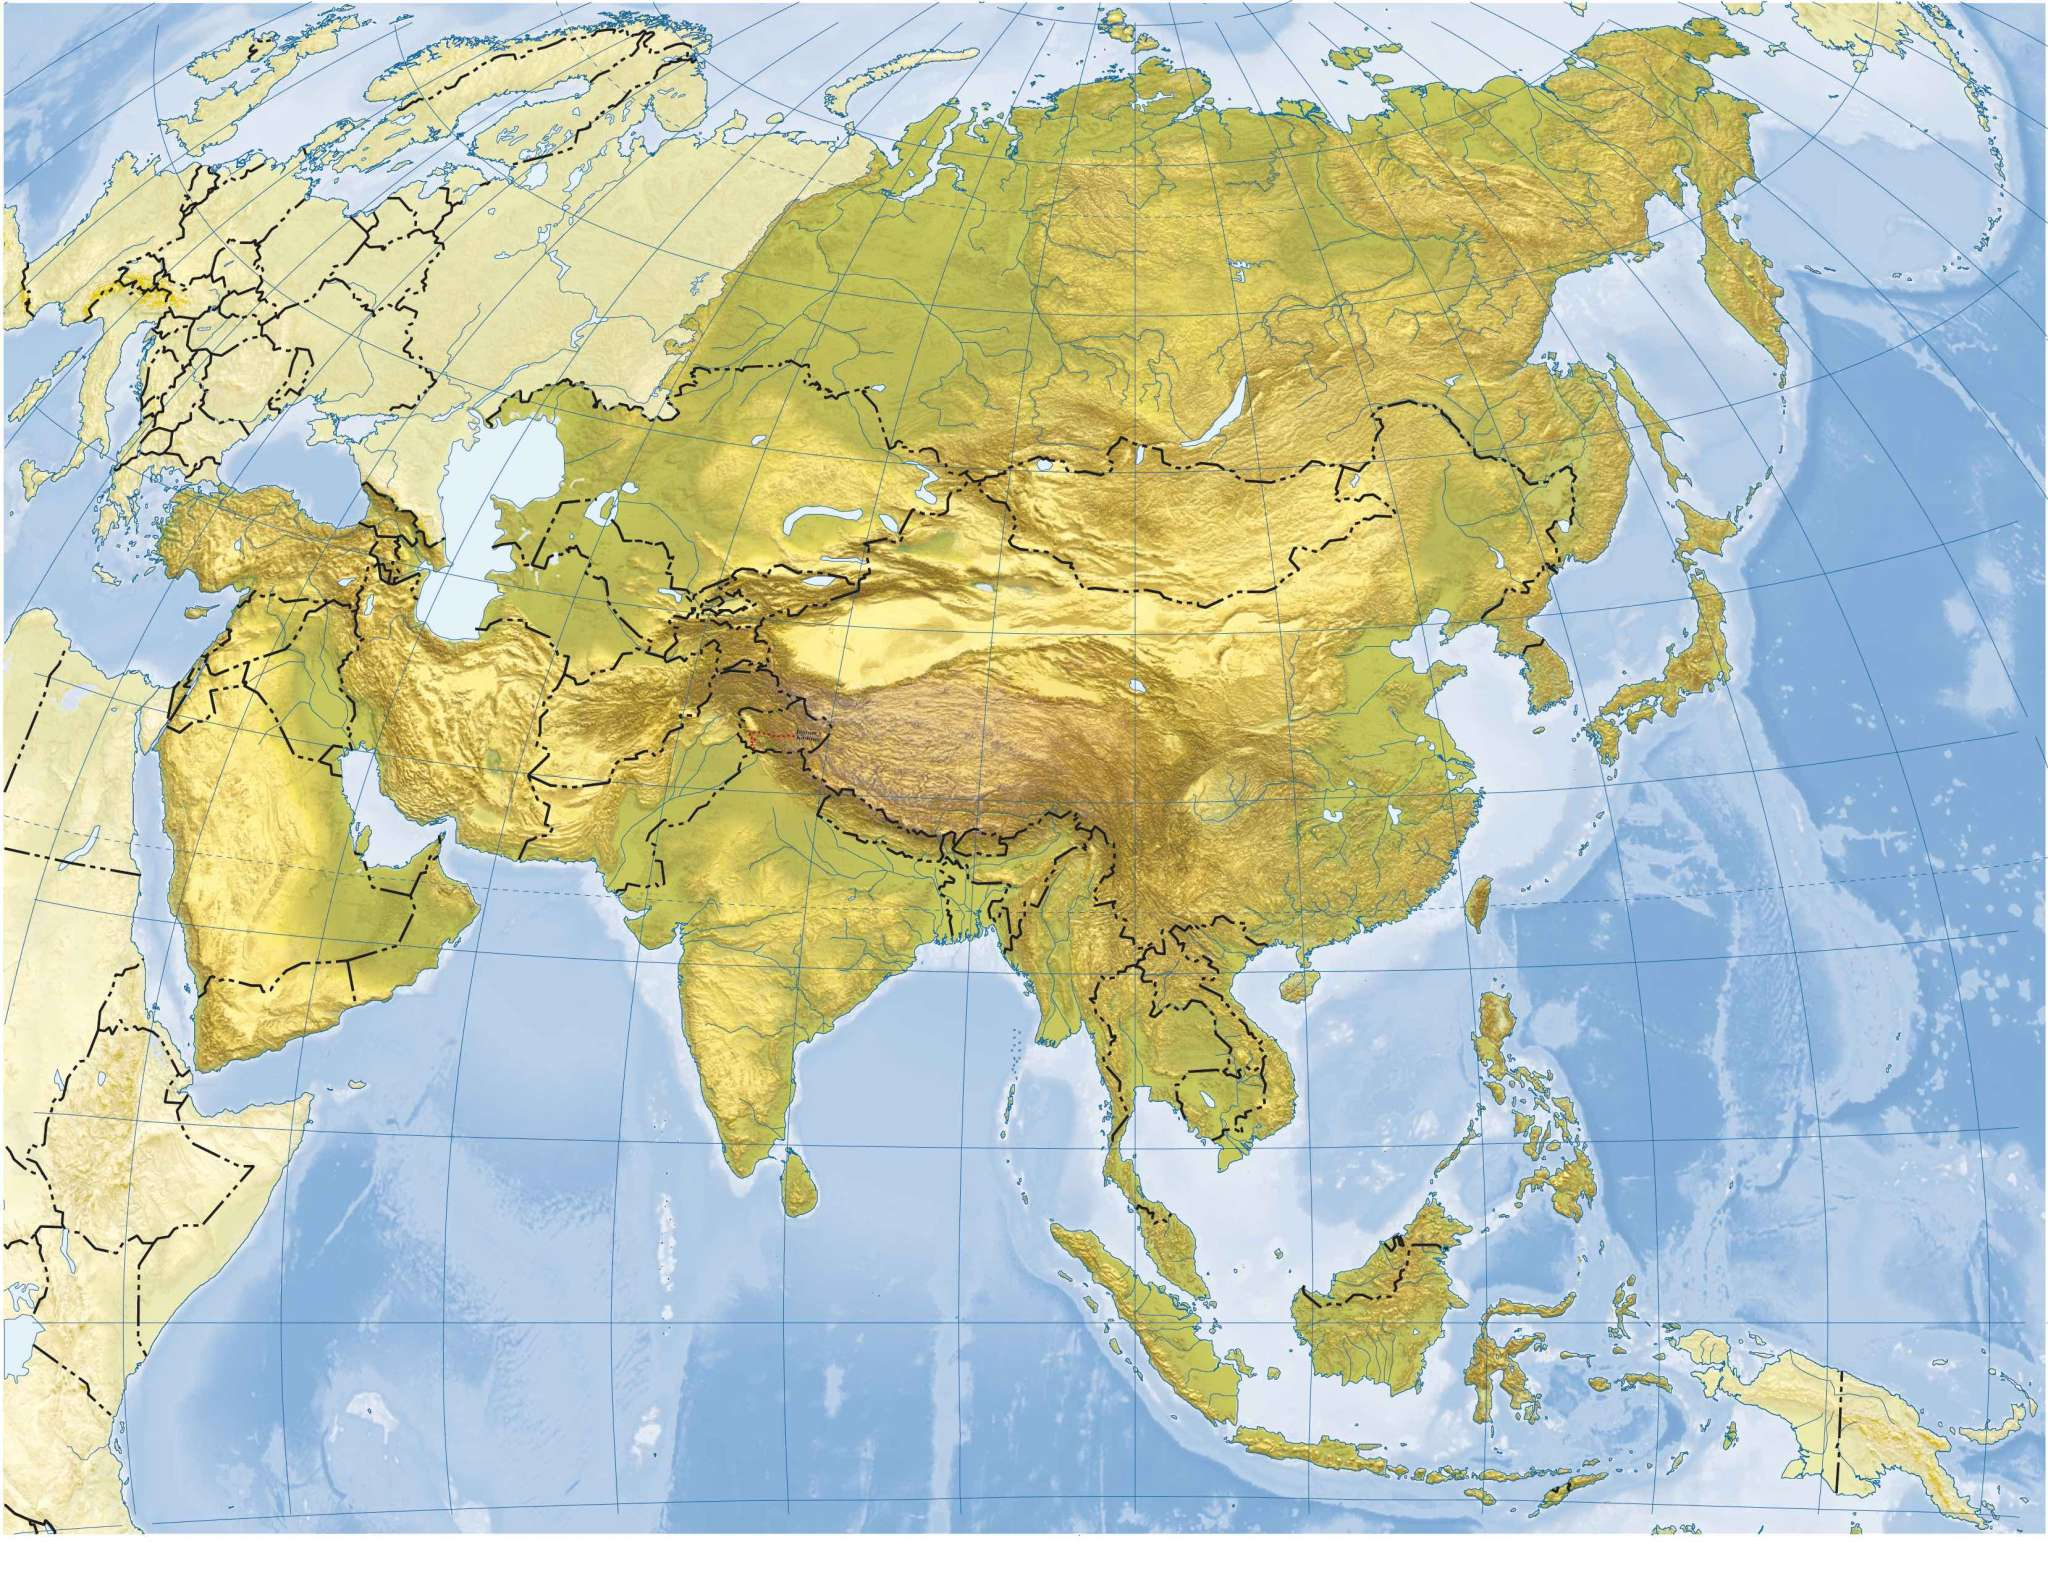 gobi desert map with Asia Fisico 1 Mares on Is Scariest Kid Terrifying Video Chucky Look Like Toddler Attacks Toy Truck further Asie Mapy further Gobi Desert Images Google Maps Satellite Spots Bizarre Structures China furthermore Climat tropical in addition 21395014466.